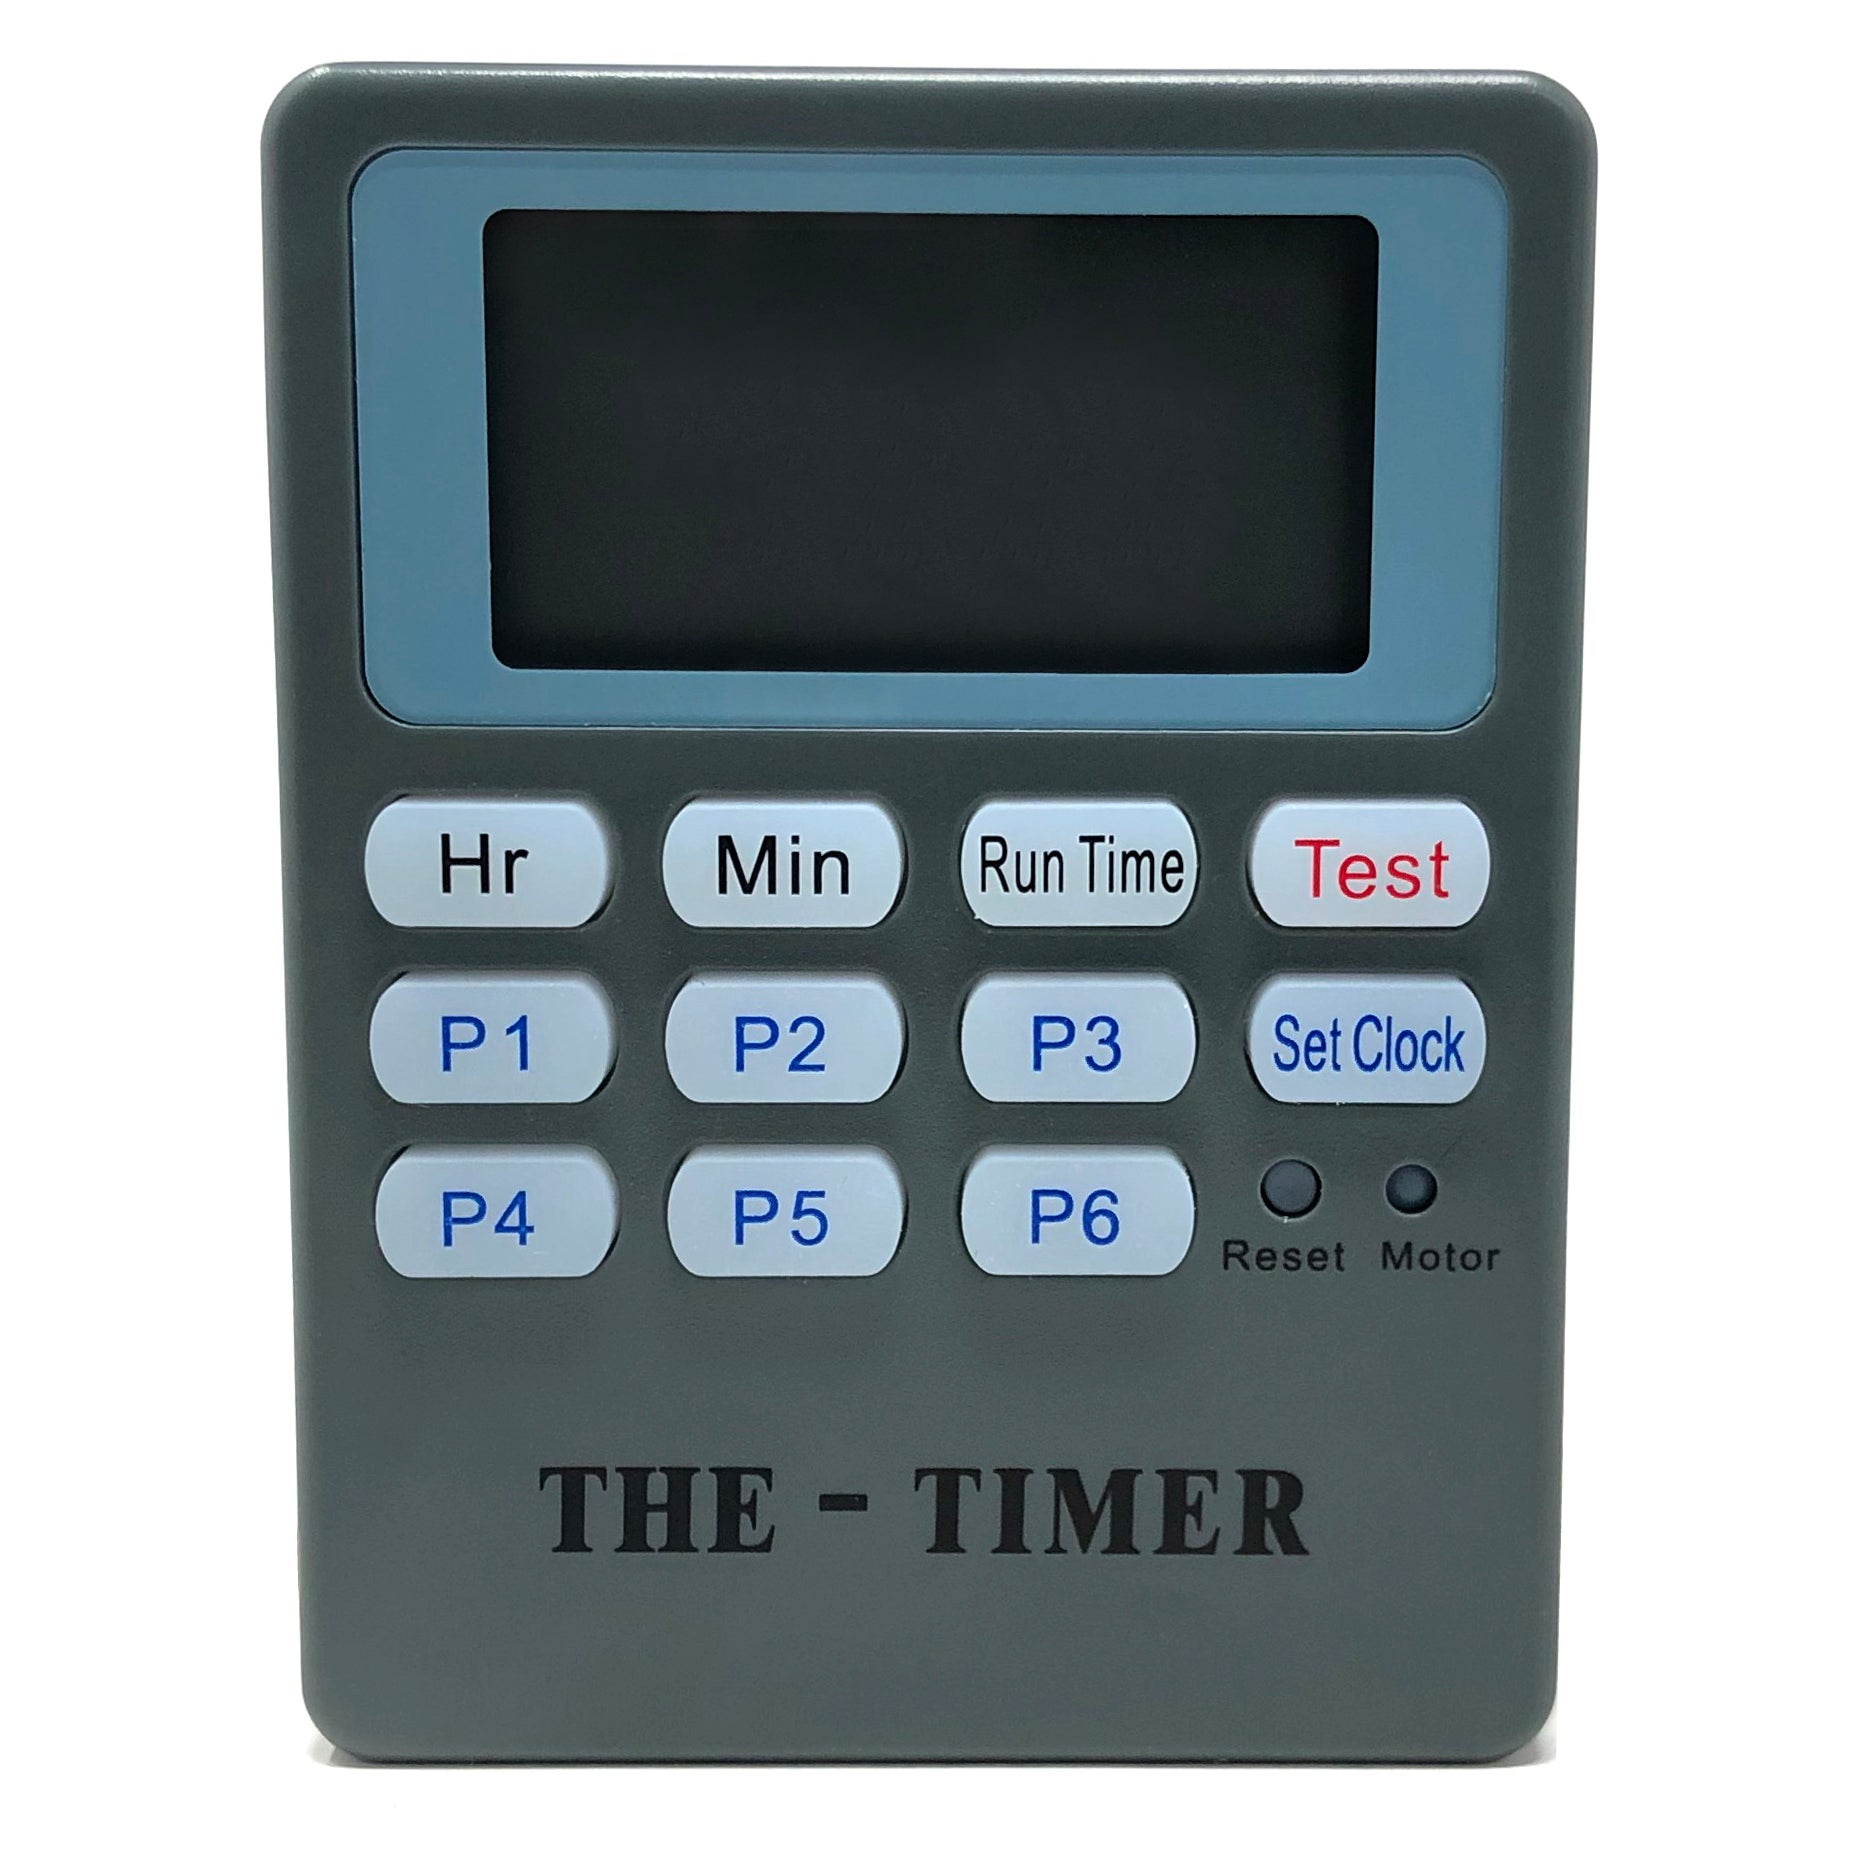 THE-TIMER